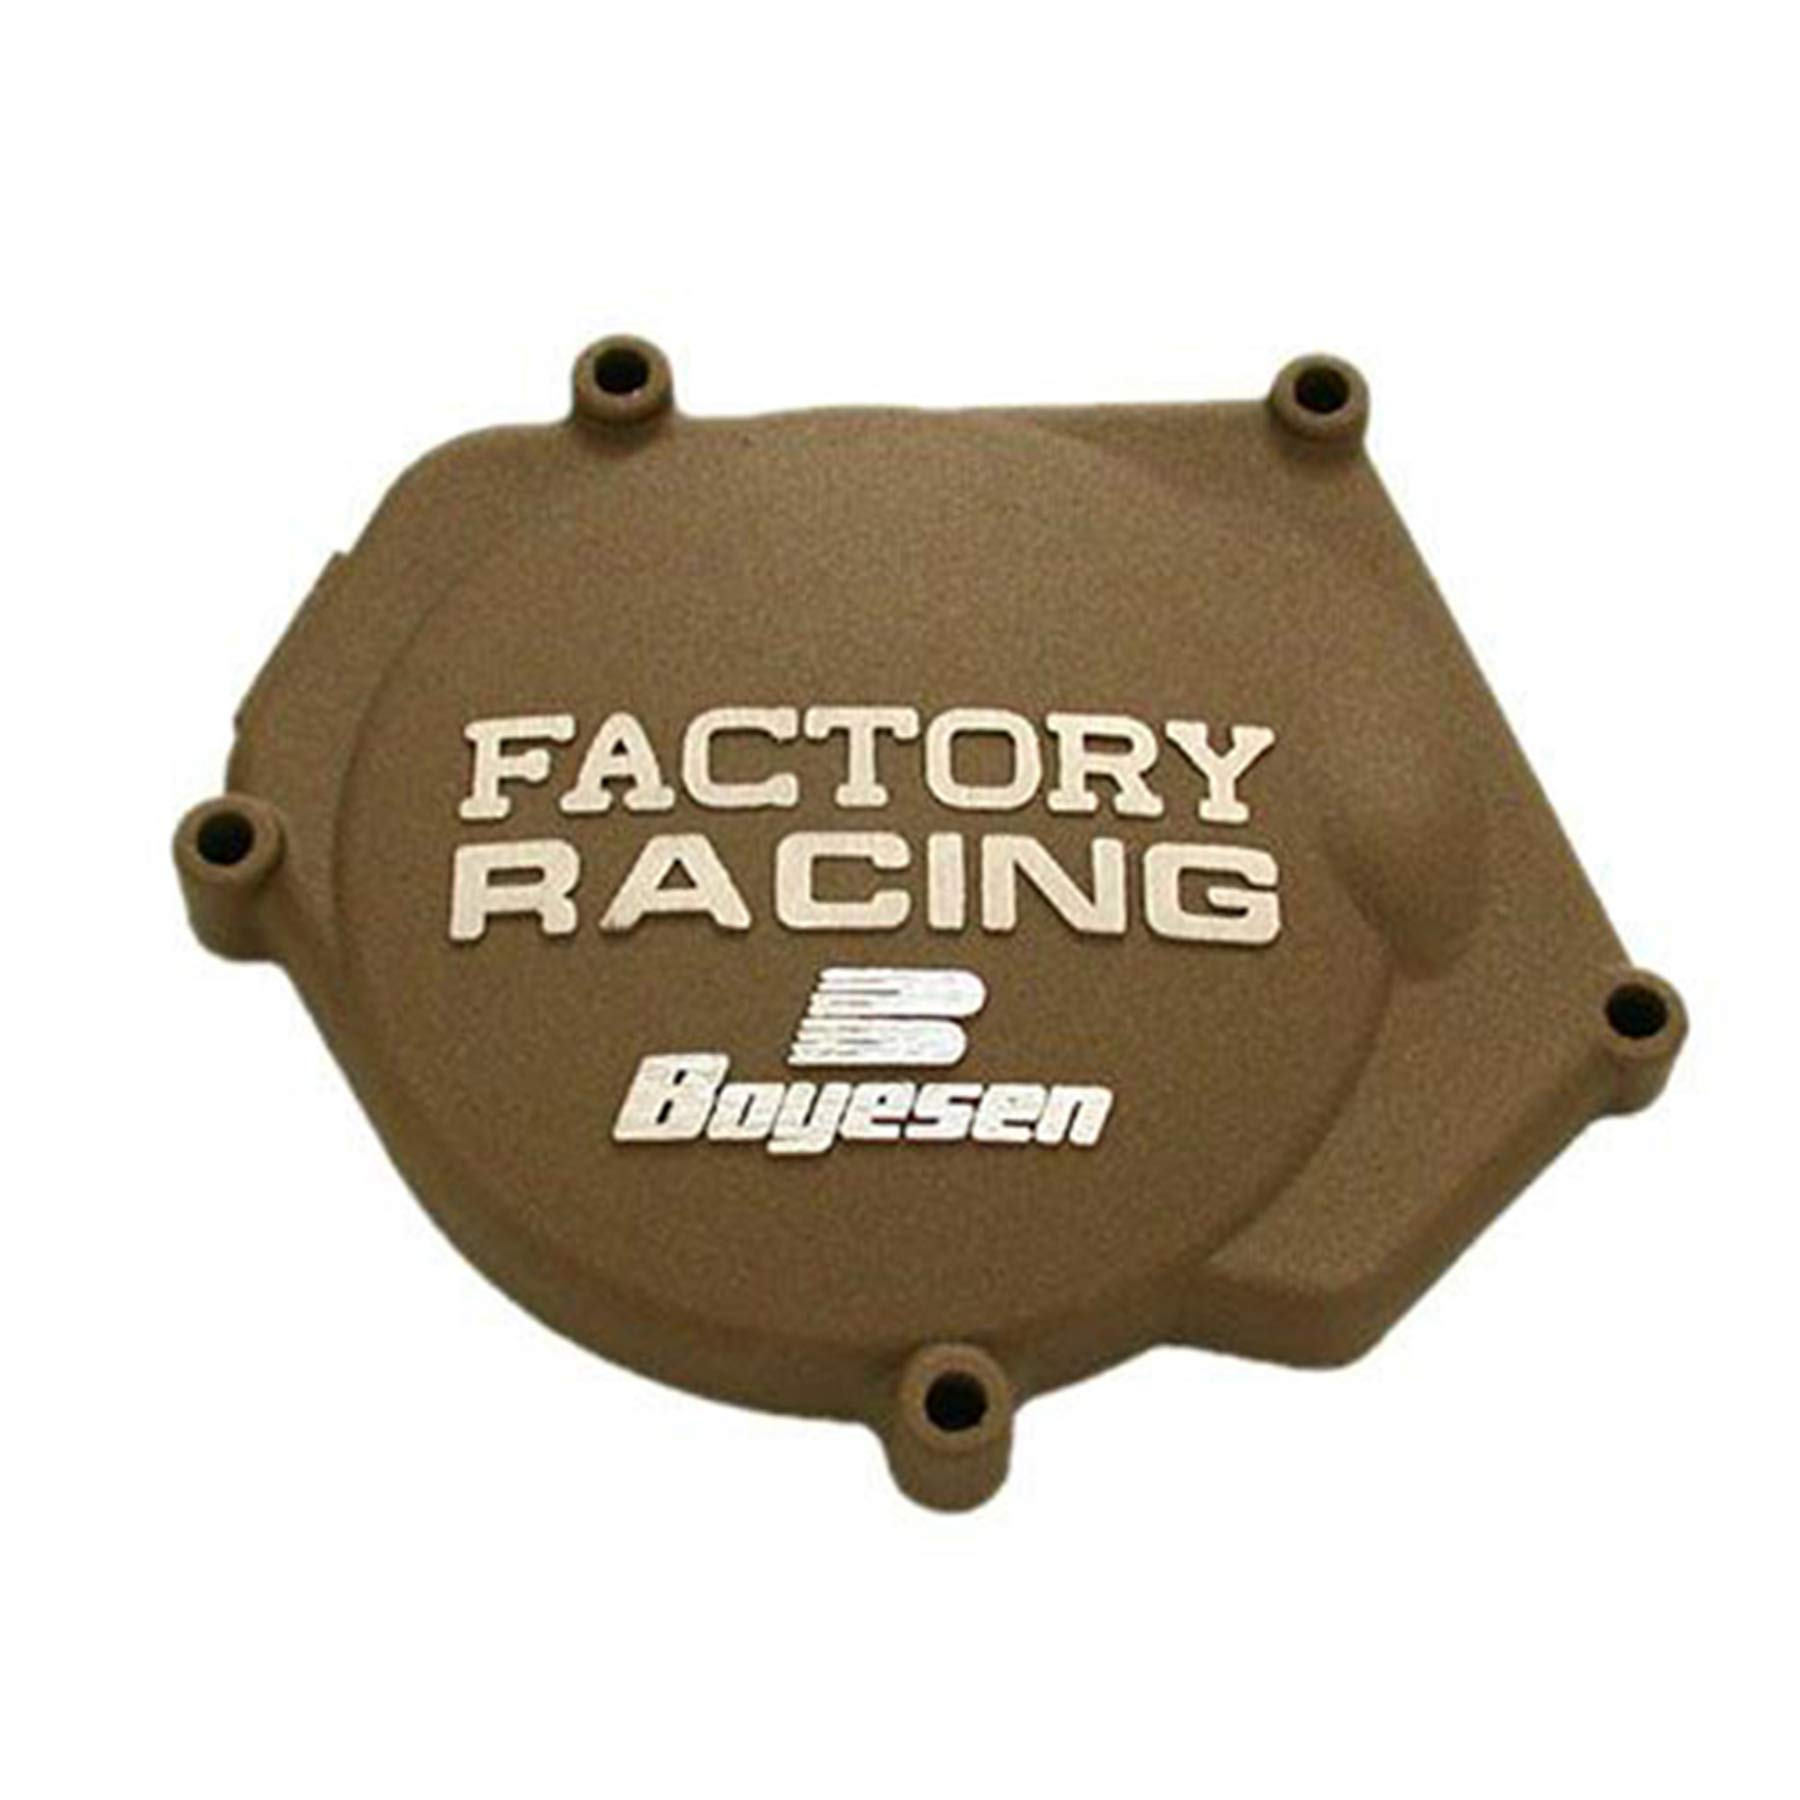 Factory Ignition Cover - Magnesium 2004 Yamaha YZ250 Offroad Motorcycle